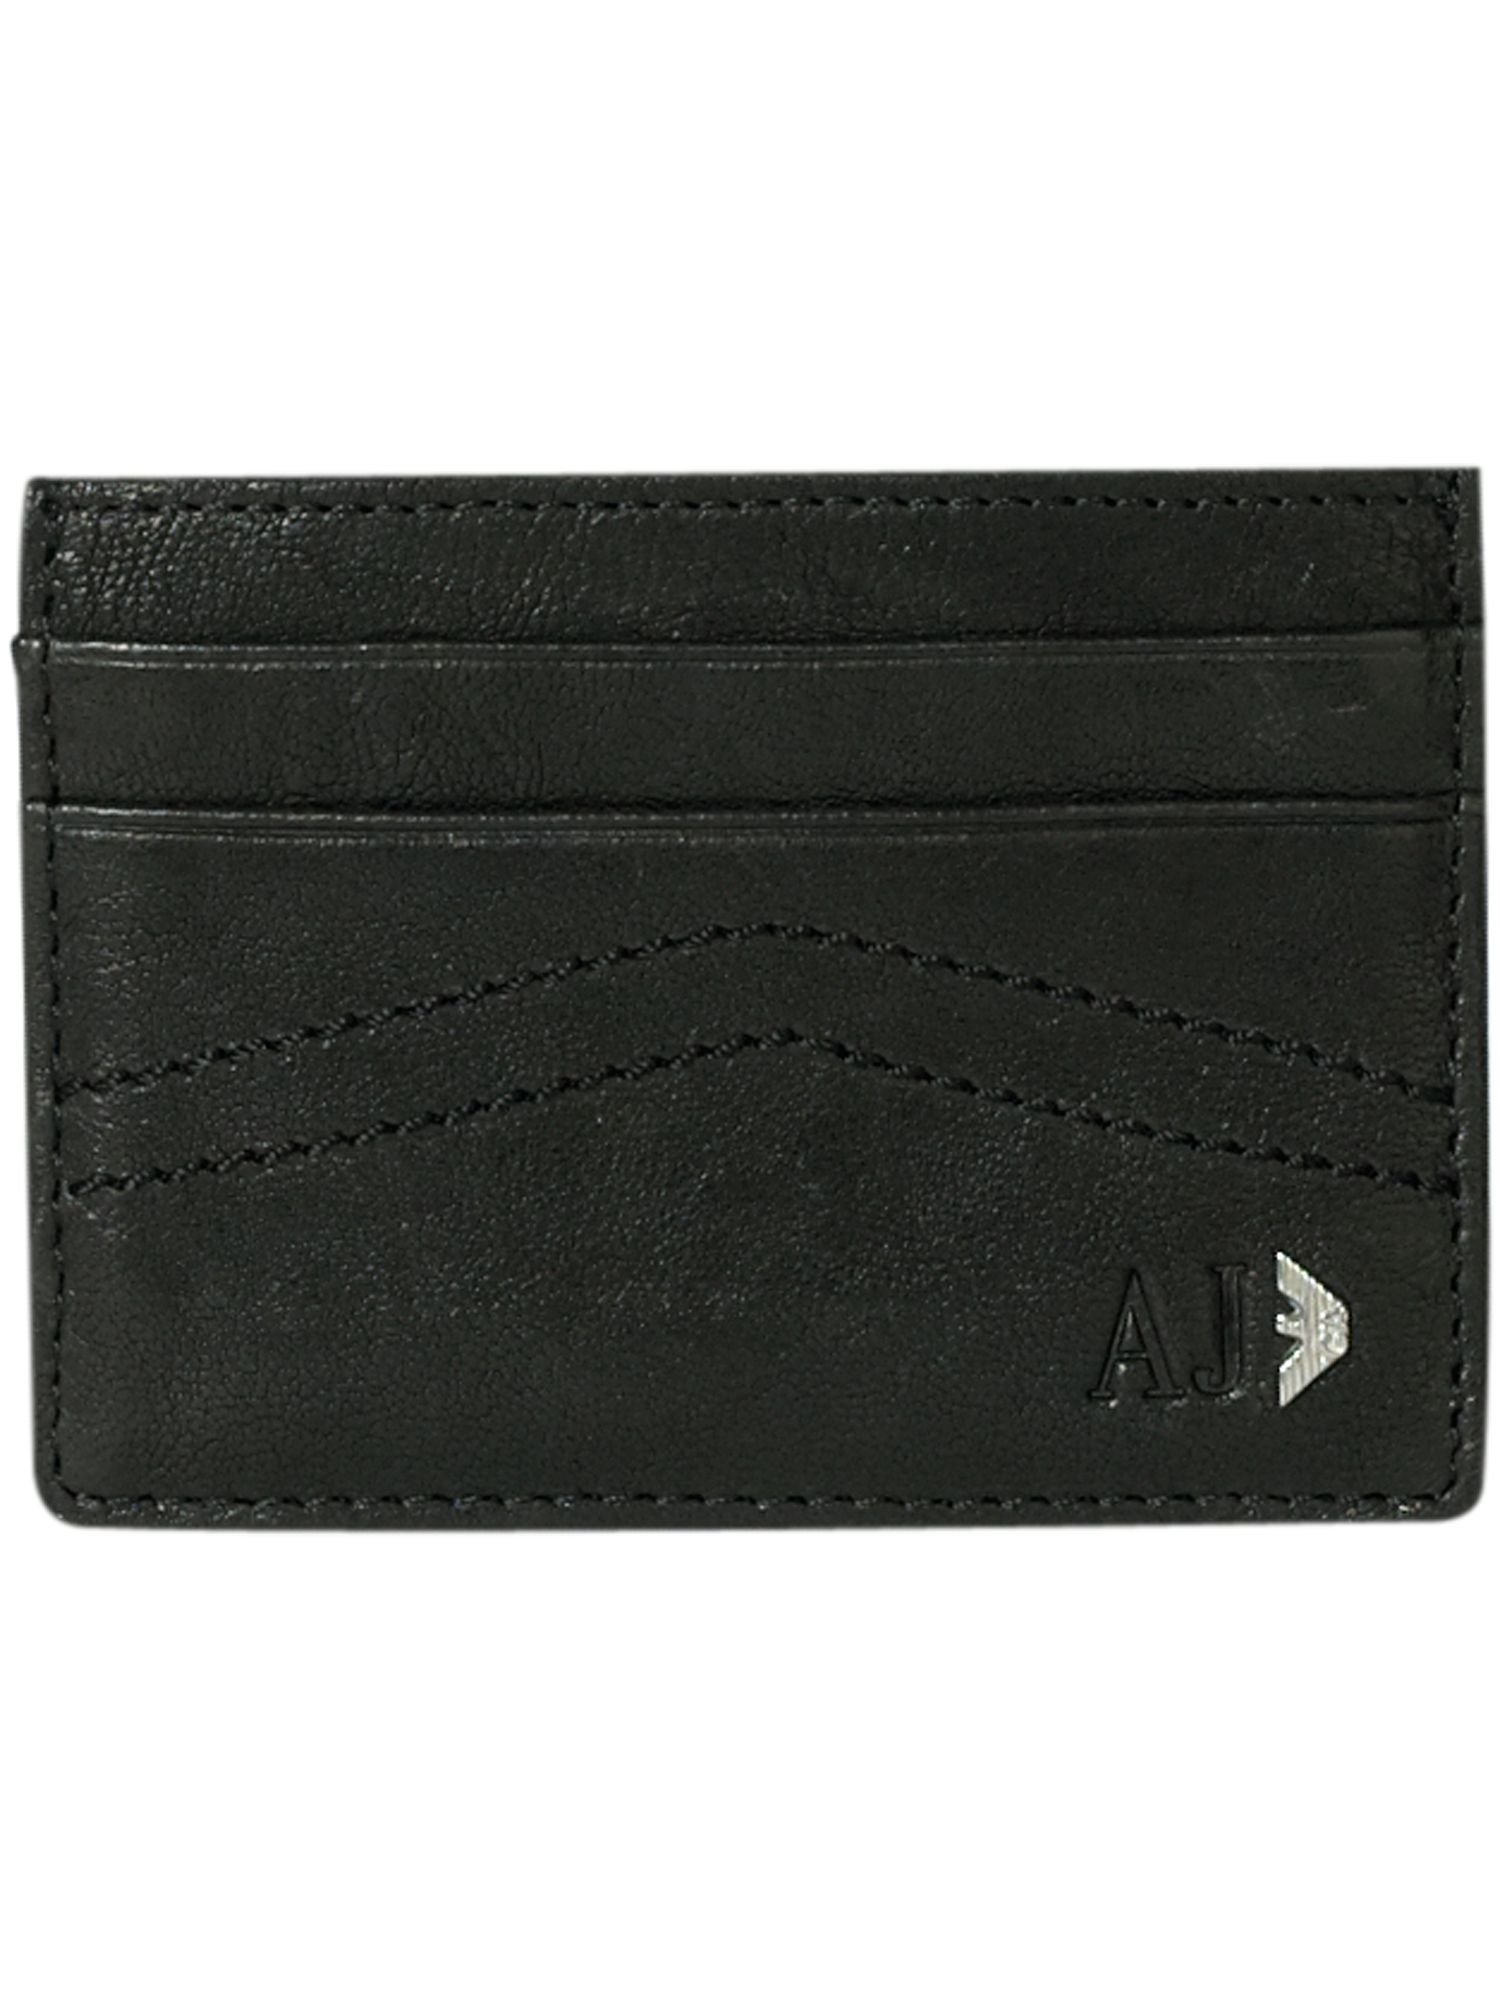 Armani Jeans Credit card holder with logo product image